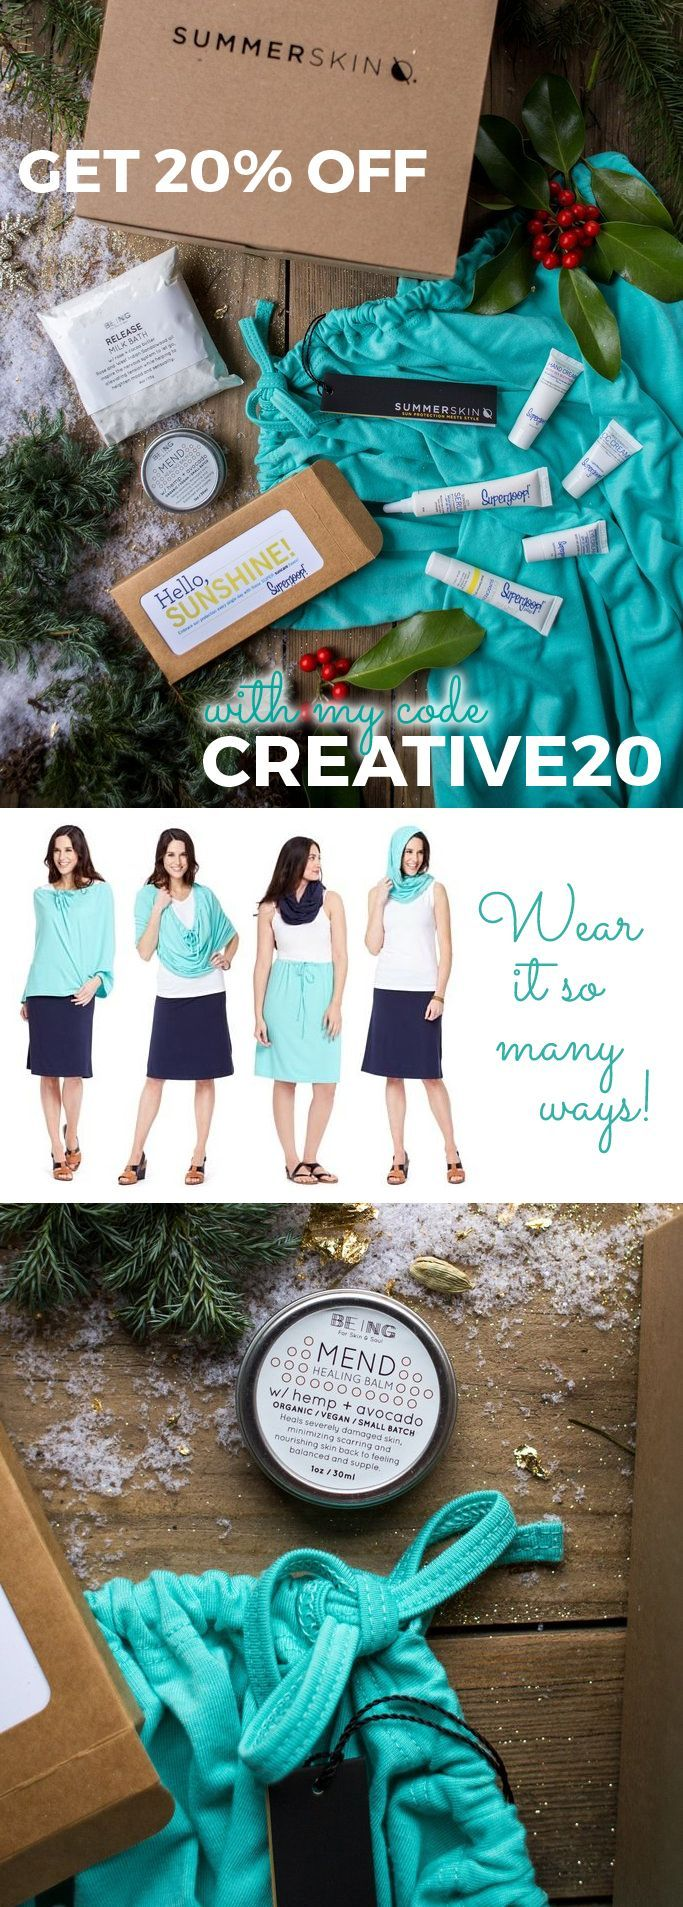 Get 20% off with my code Creative20 - Show your love this holiday season and give the gift of skin health! Summer Skin health boxes are customizable, wrapped in a ribbon and ready to give! They contain the best selling Endless Summer Wrap which can be a cover, infinity scarf, shoulder wrap, skirt, hood, halter top, sun protection, cool evenings and more. With built in UPF 50+, this will make a perfect Christmas gift for women who love the outdoors, moms, mums, grandma or sun-loving teens.